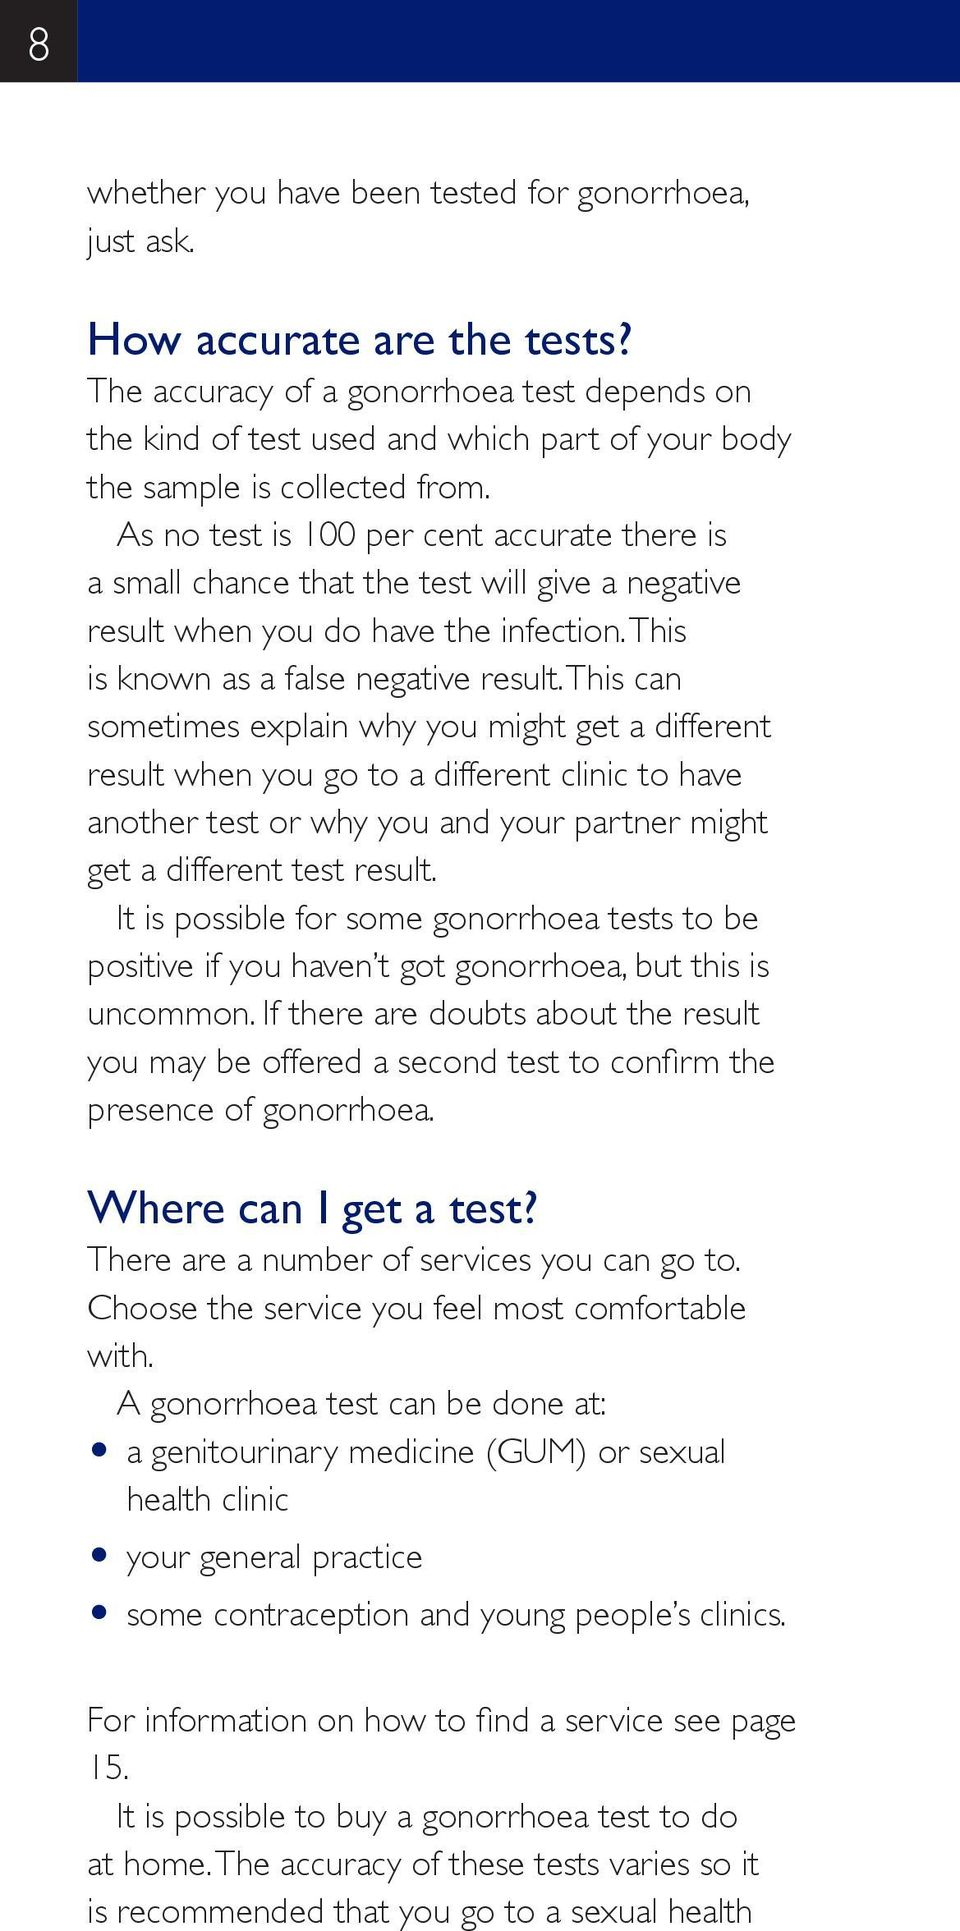 As no test is 100 per cent accurate there is a small chance that the test will give a negative result when you do have the infection. This is known as a false negative result.